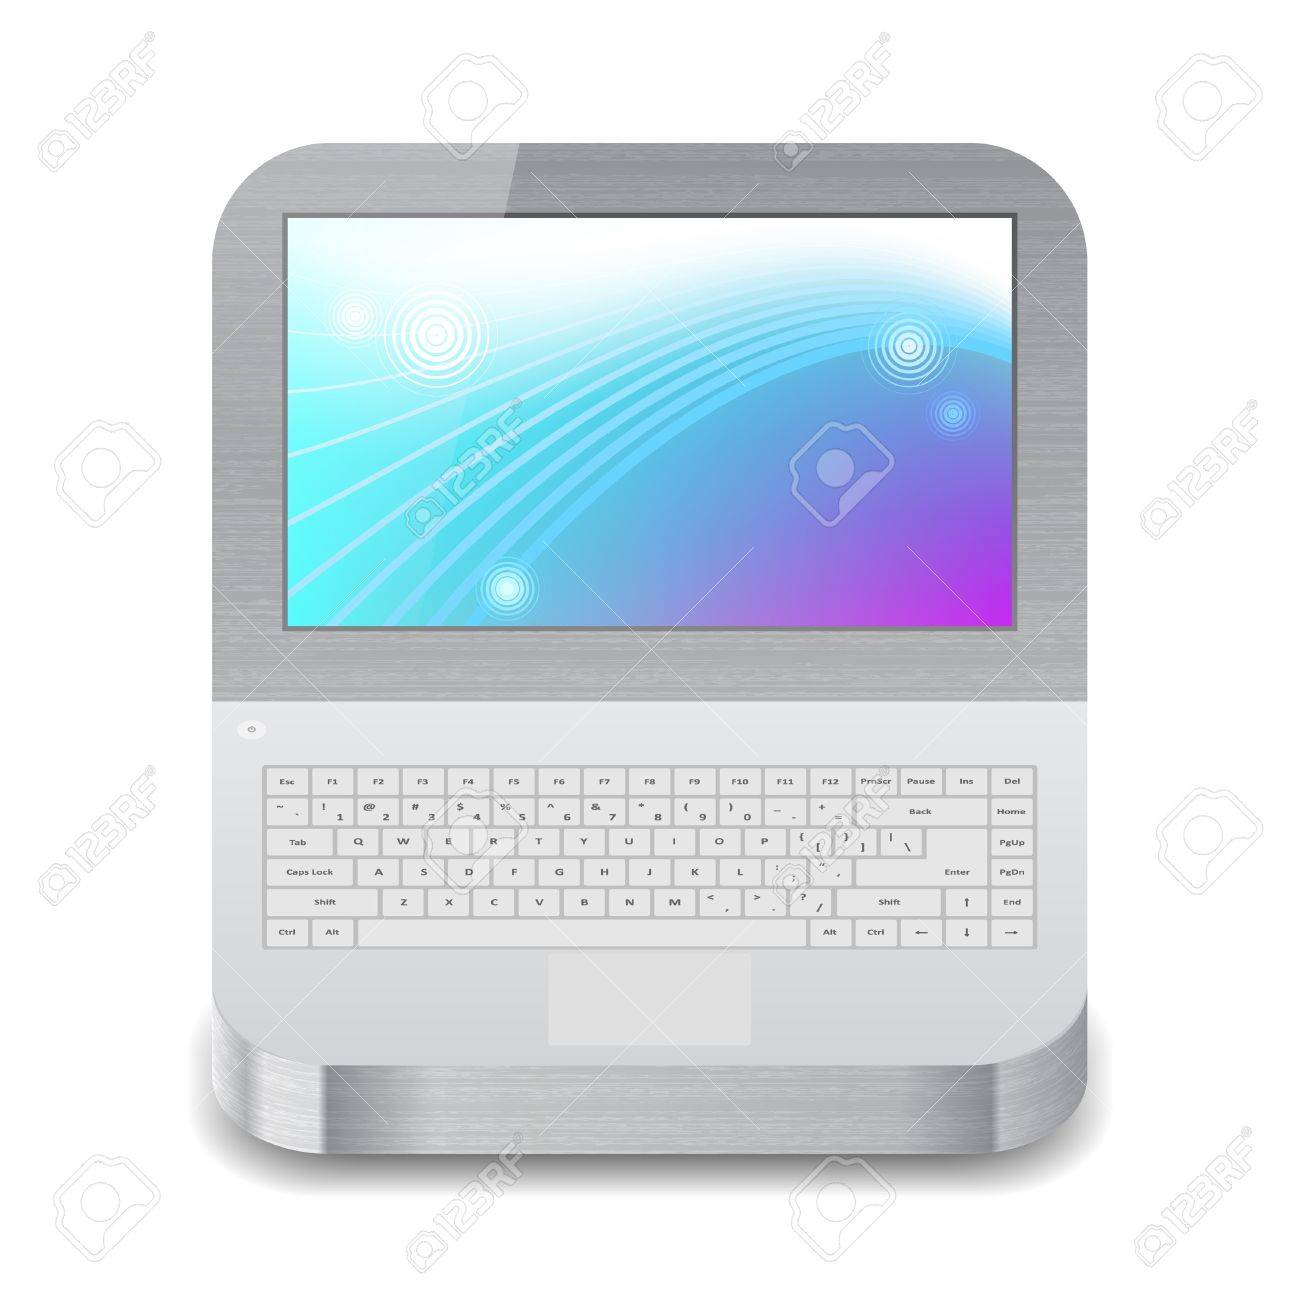 Icon for laptop with blue and purple wallpaper on display. White background. Stock Vector - 15585068